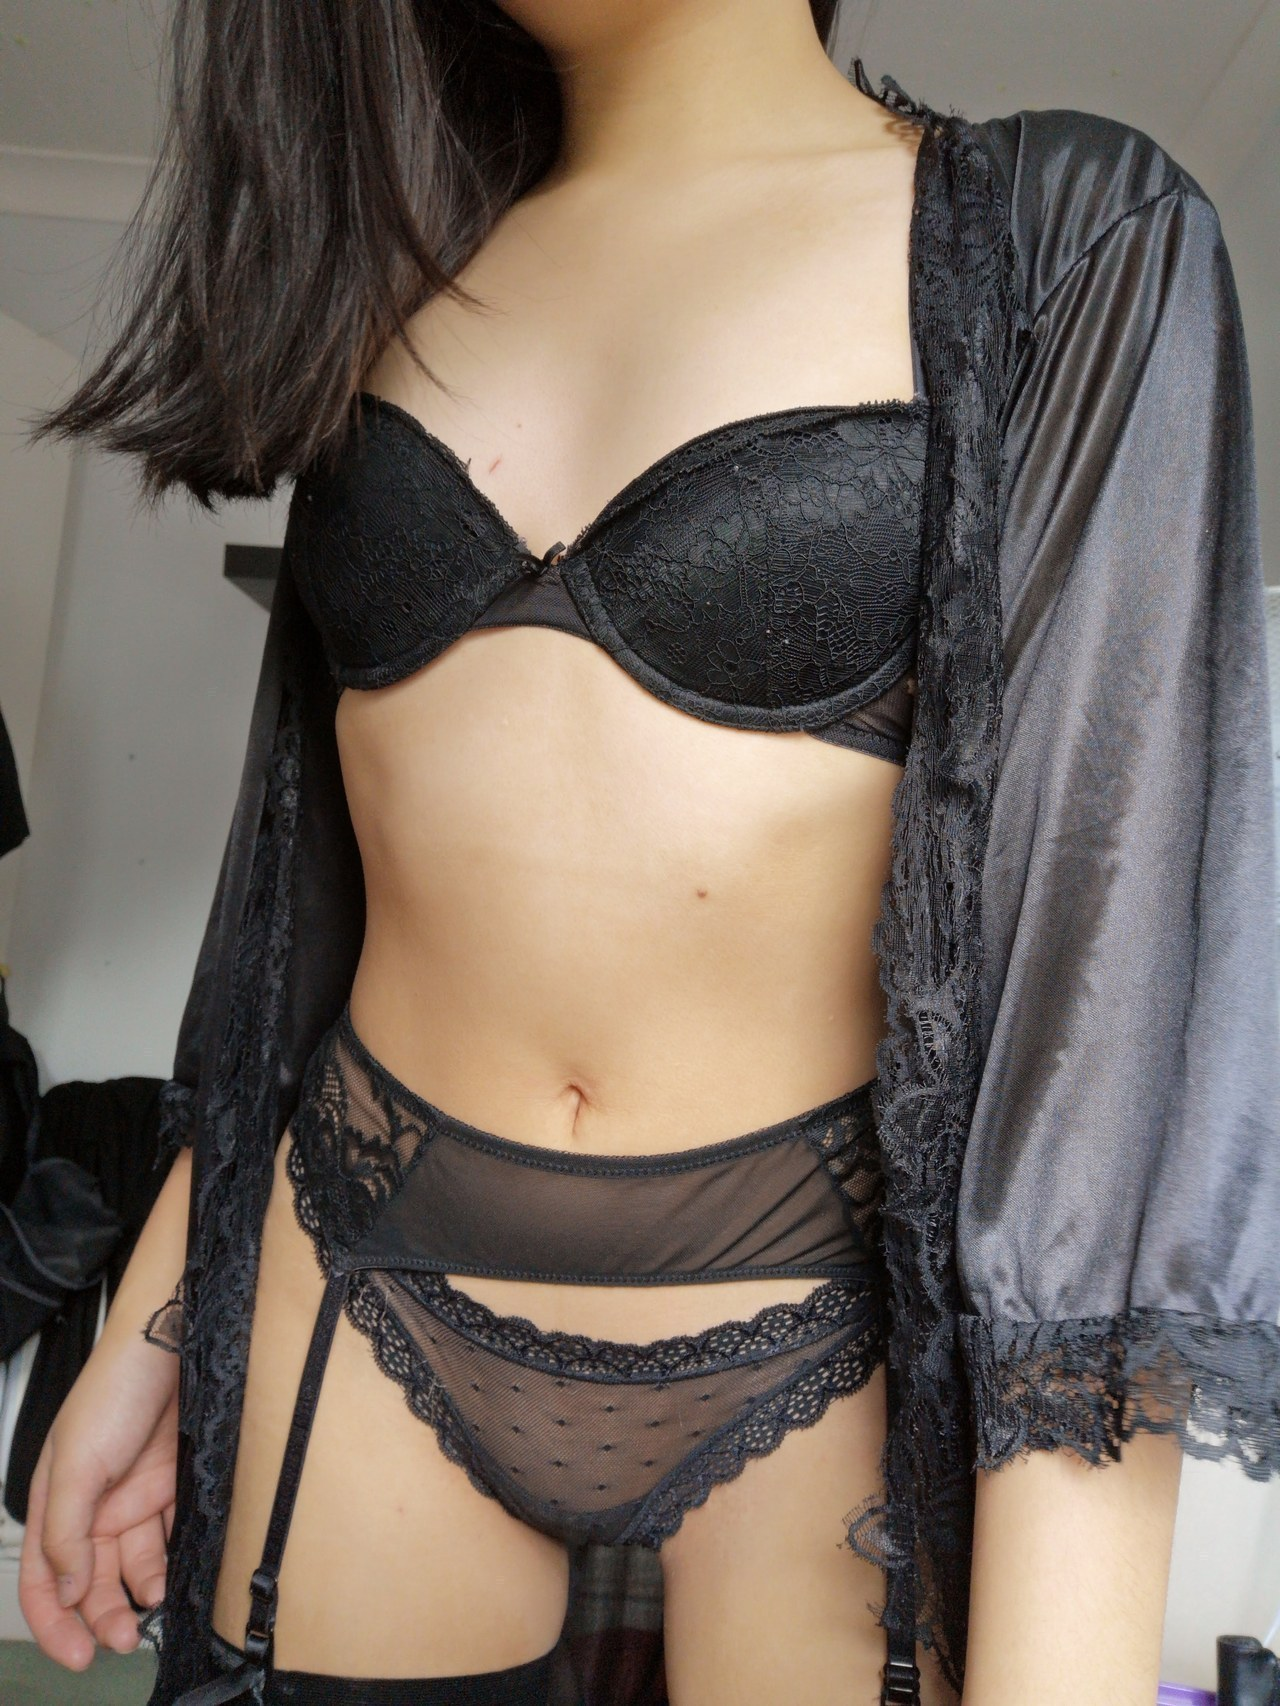 tumblr_pxe6unAdGm1y3mw56o1_1280.jpg -  Link in topic Sexy Lingerie by MaryLovesPorn